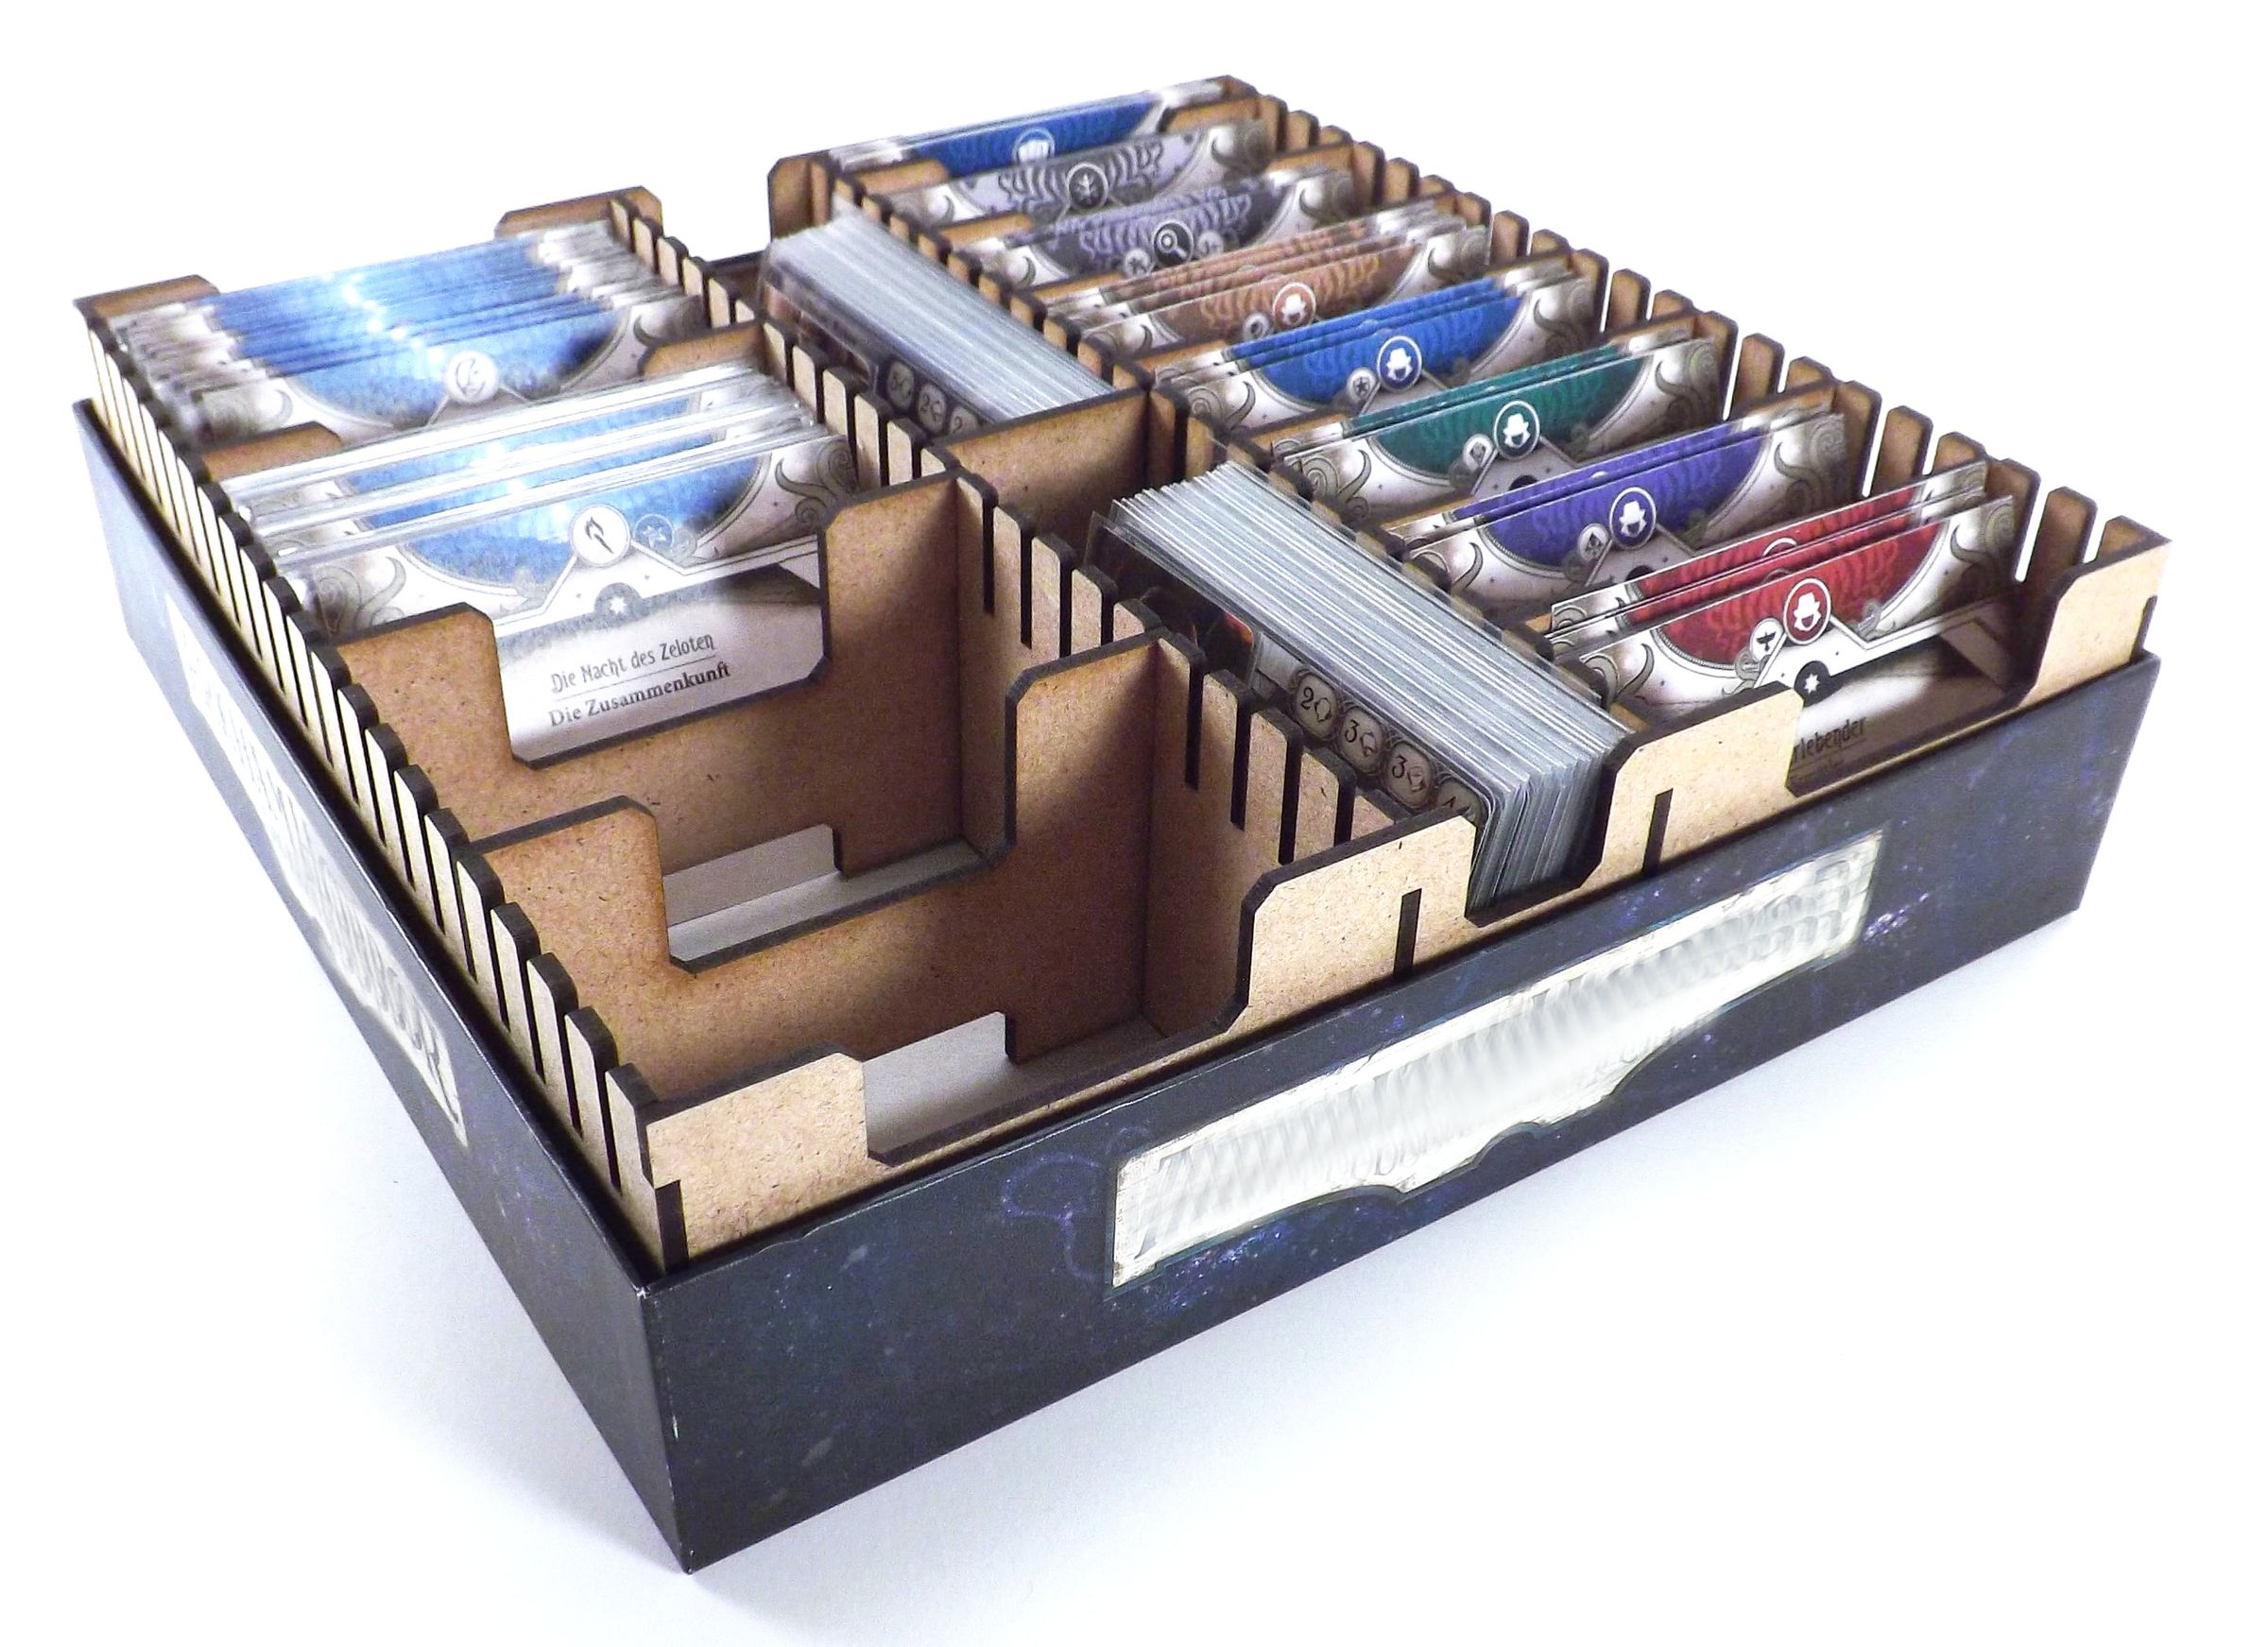 CAMI Universal sorter for trading card games in small playing boxes 245 mm x 245 mm  CAMI universal sorter for trading card games in small cardboard boxes 245 mm x 245 mm